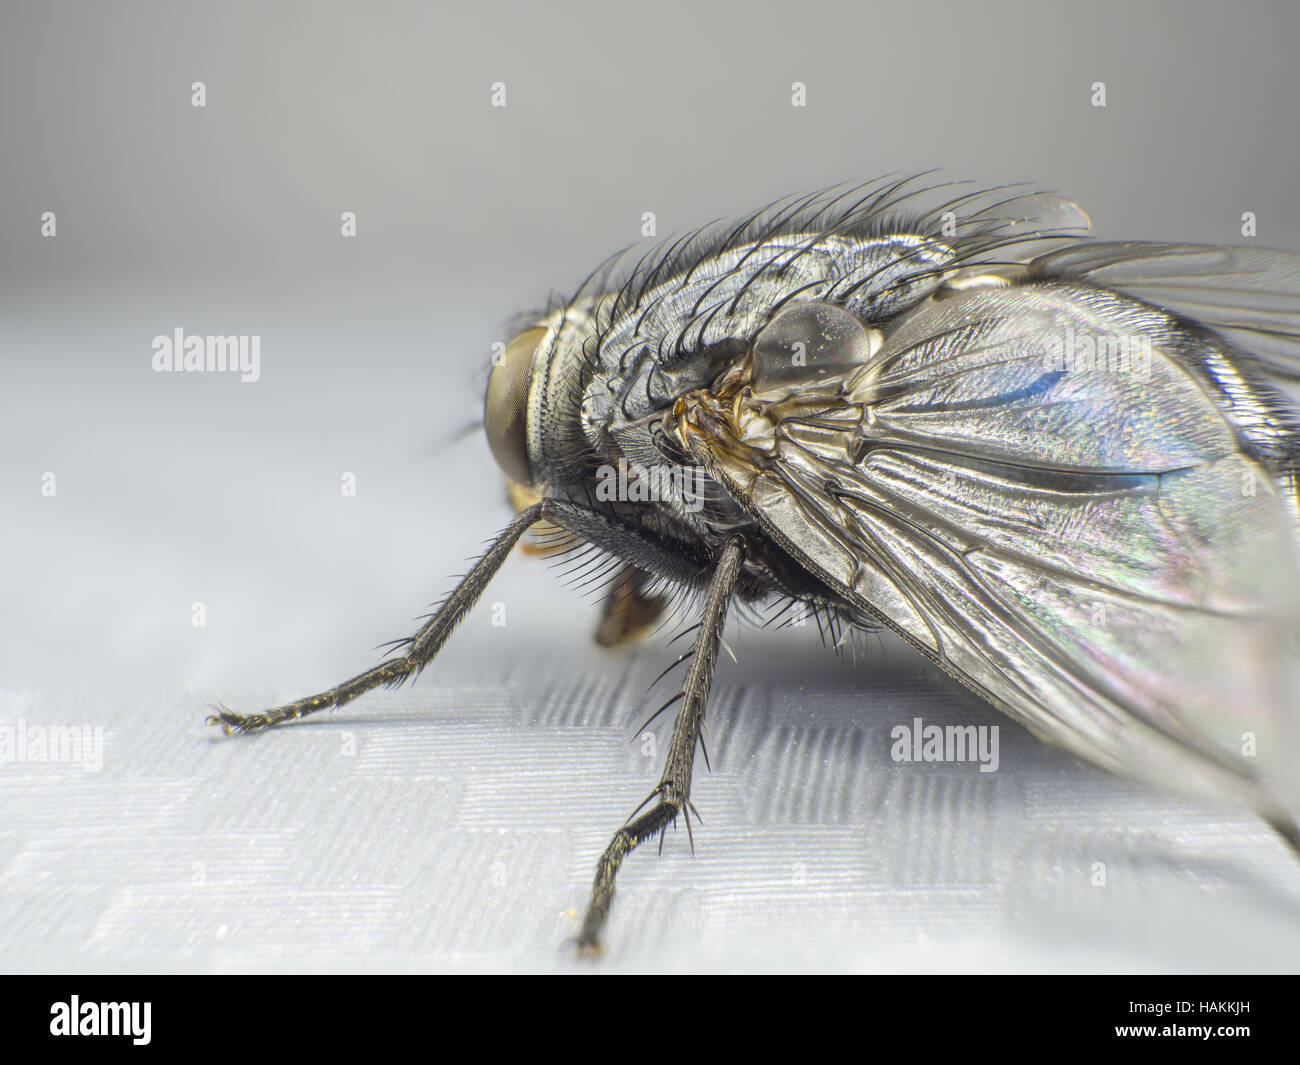 A fly insect closeup, macro shot, large hexapod, stacking